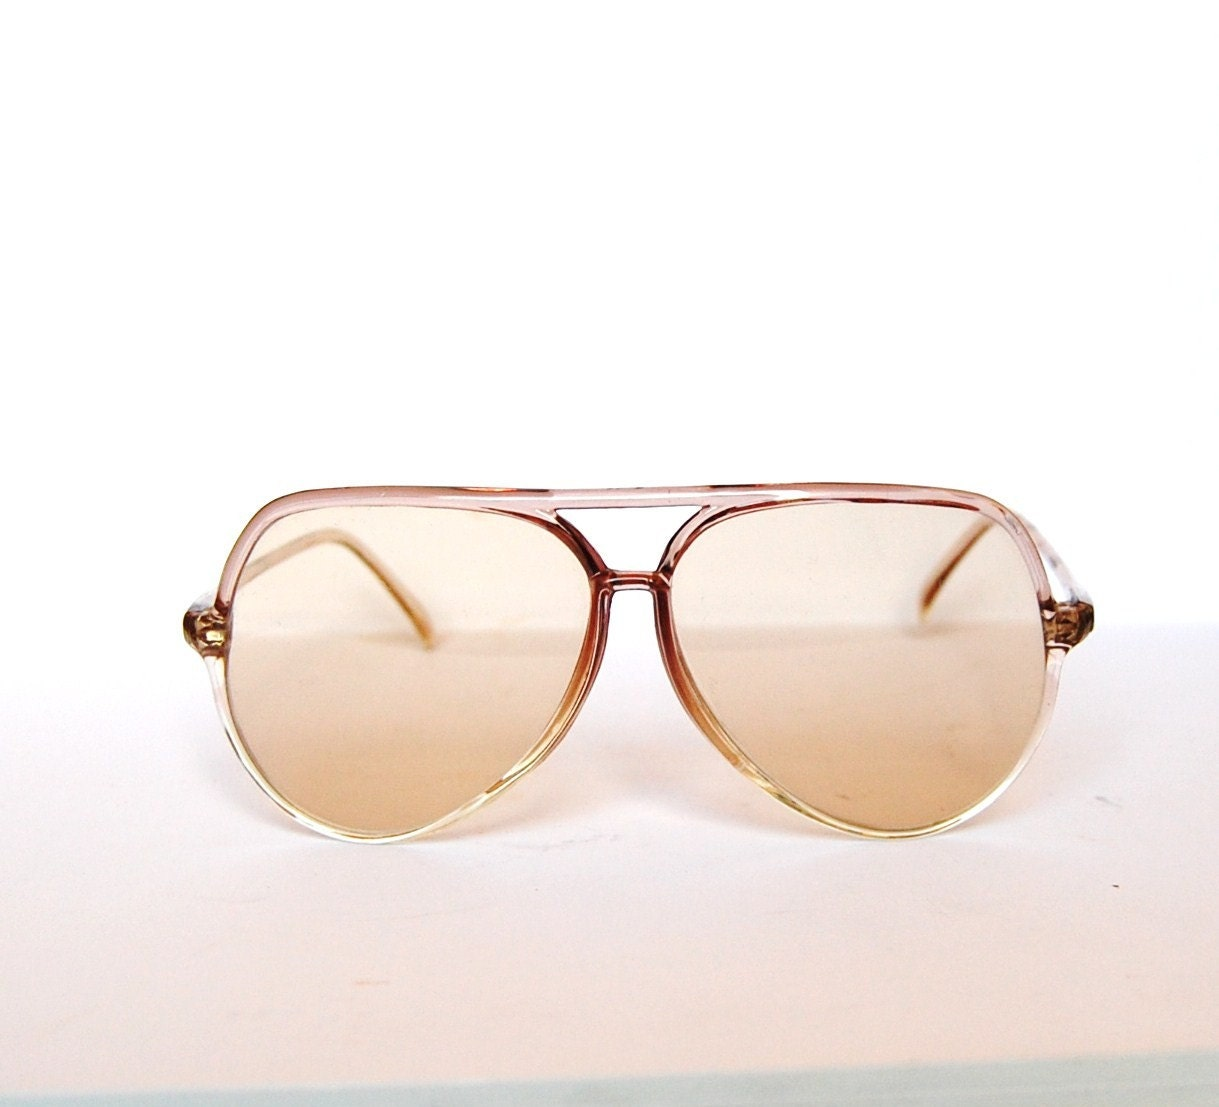 Vintage aviator sunglasses from Germany by RetroEyewear on Etsy from etsy.com